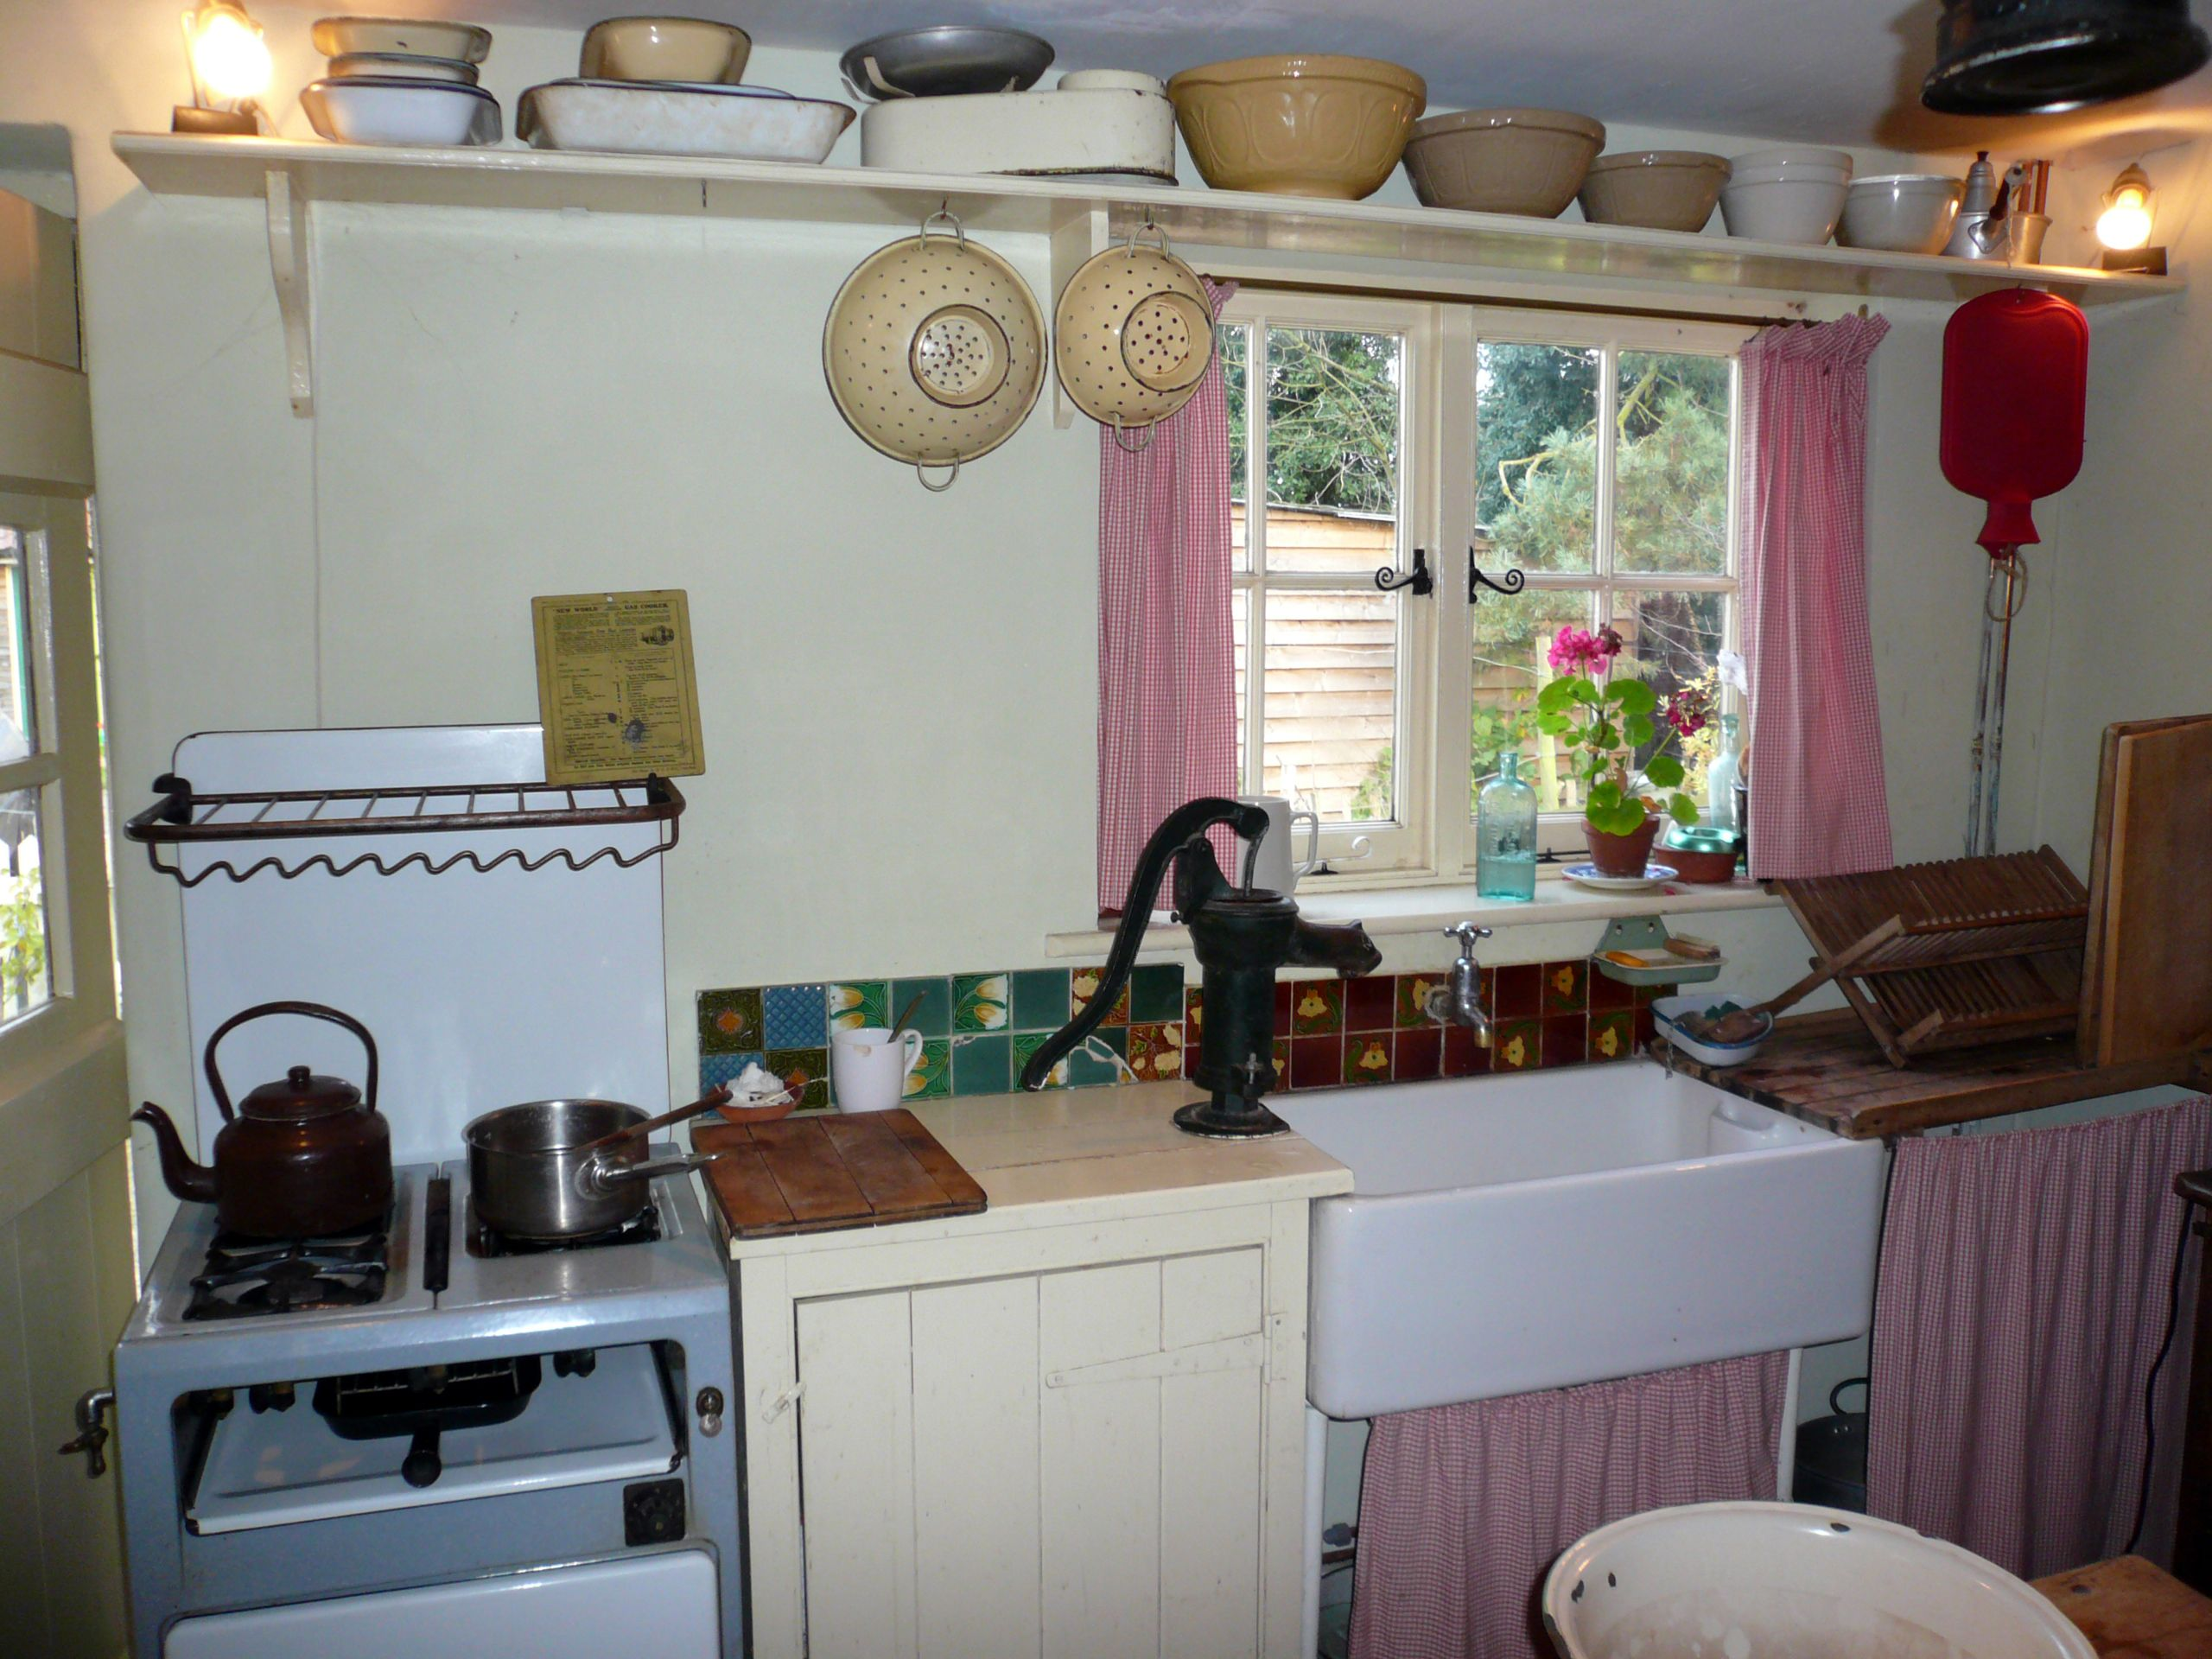 1940s Kitchen: NEN Gallery